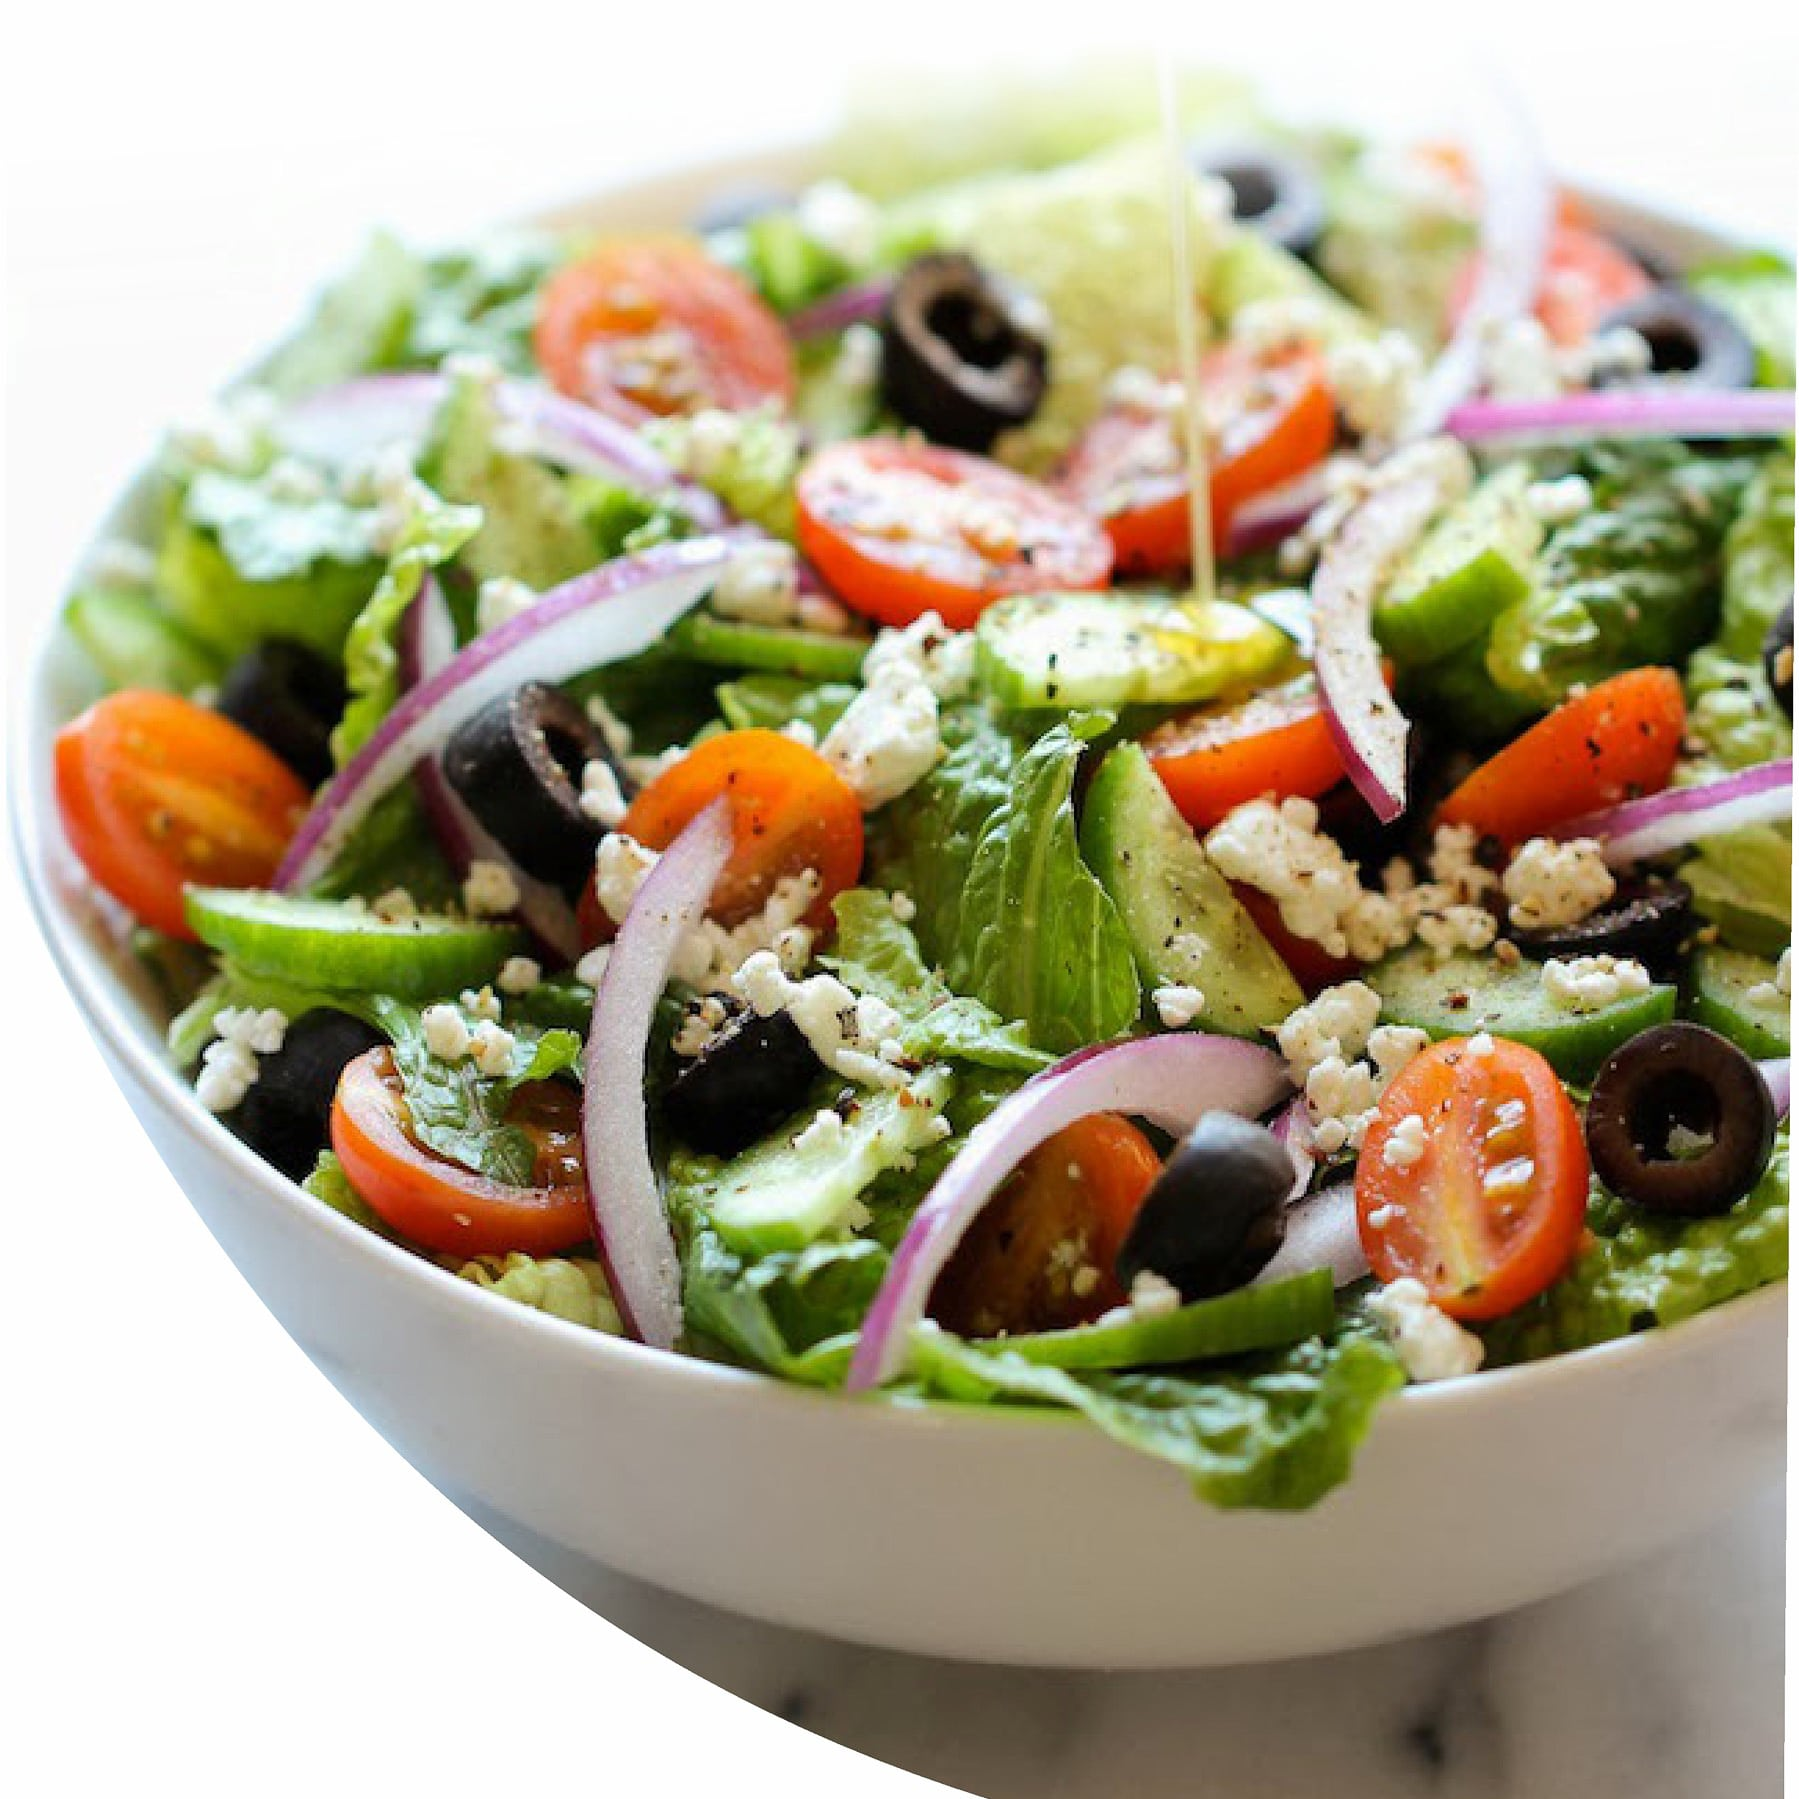 Mediterranean salad with feta cheese, kalamata olives, res onions, tomatoes, and cucumber